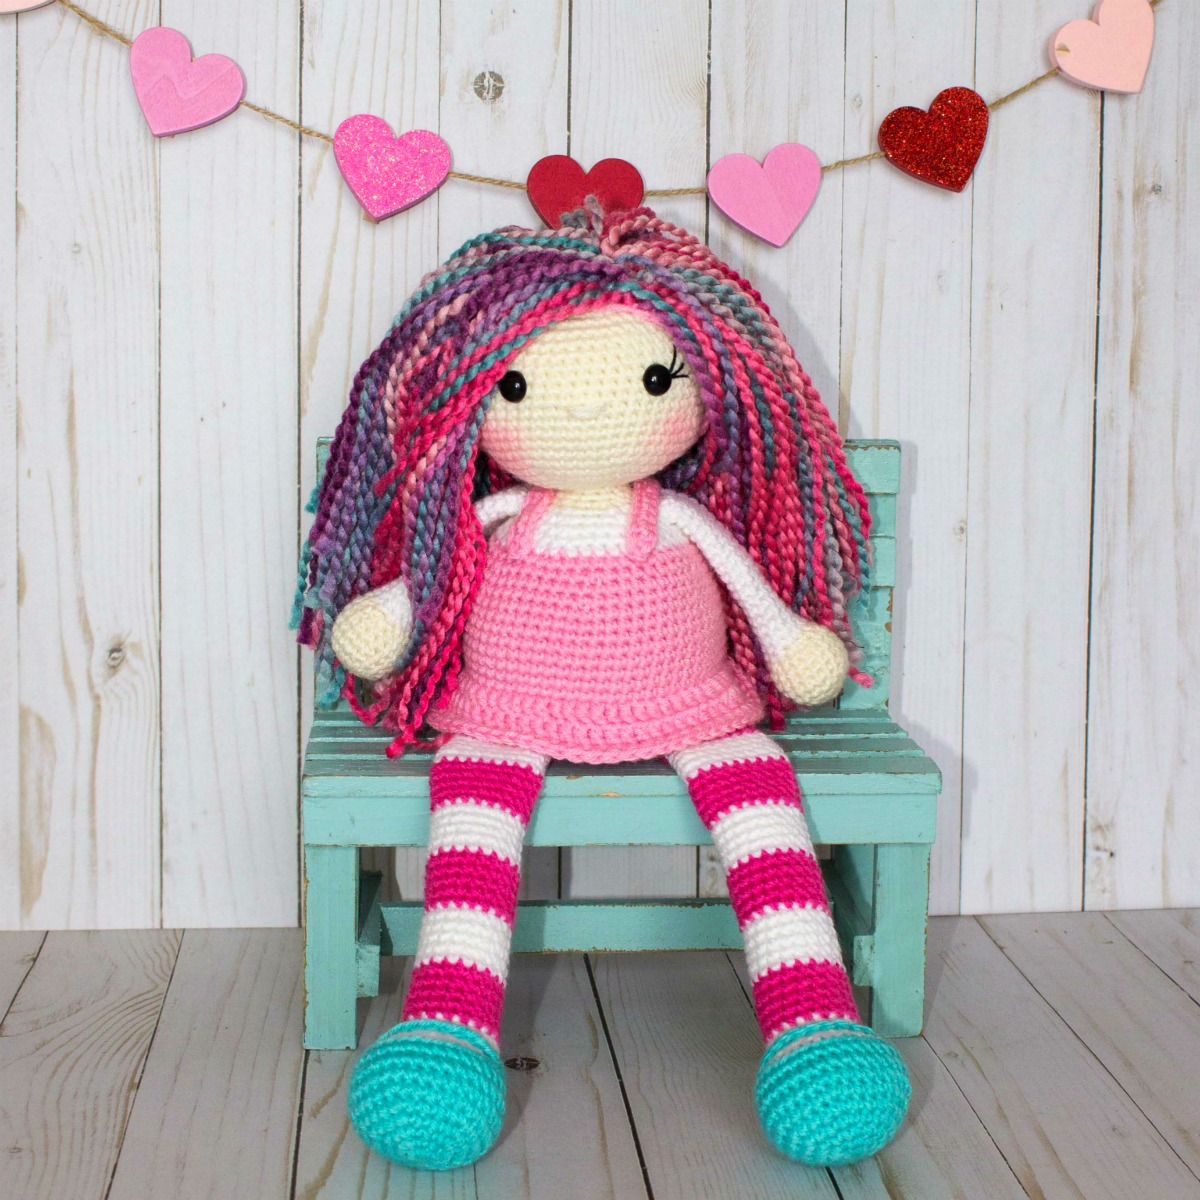 crochet doll | Crochet dolls, Crochet doll, Knitted dolls | 1200x1200